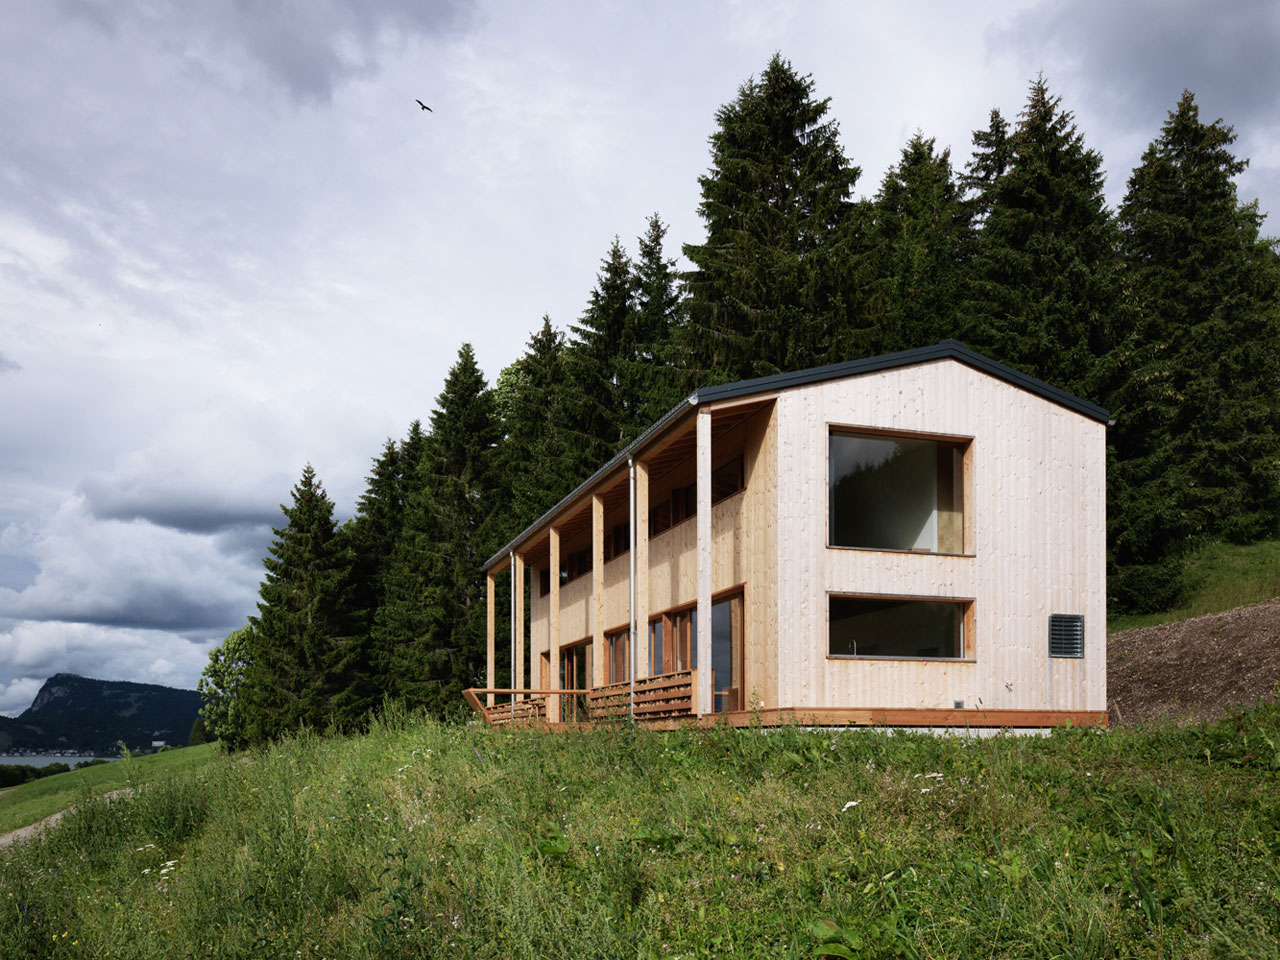 House MW / The House by the Lake by Ralph Germann architectes